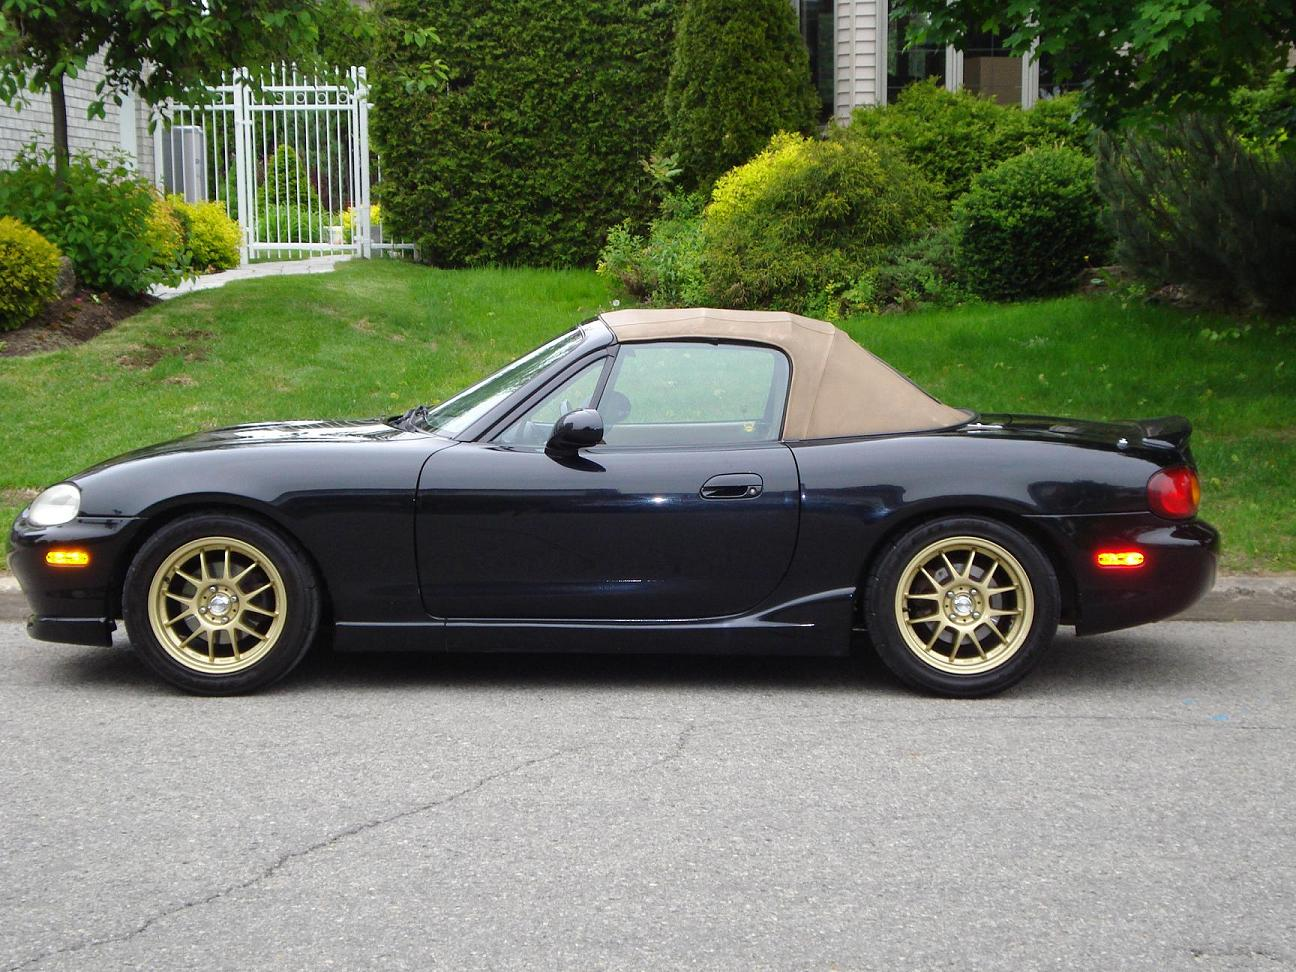 1999 mazda mx 5 miata information and photos momentcar. Black Bedroom Furniture Sets. Home Design Ideas